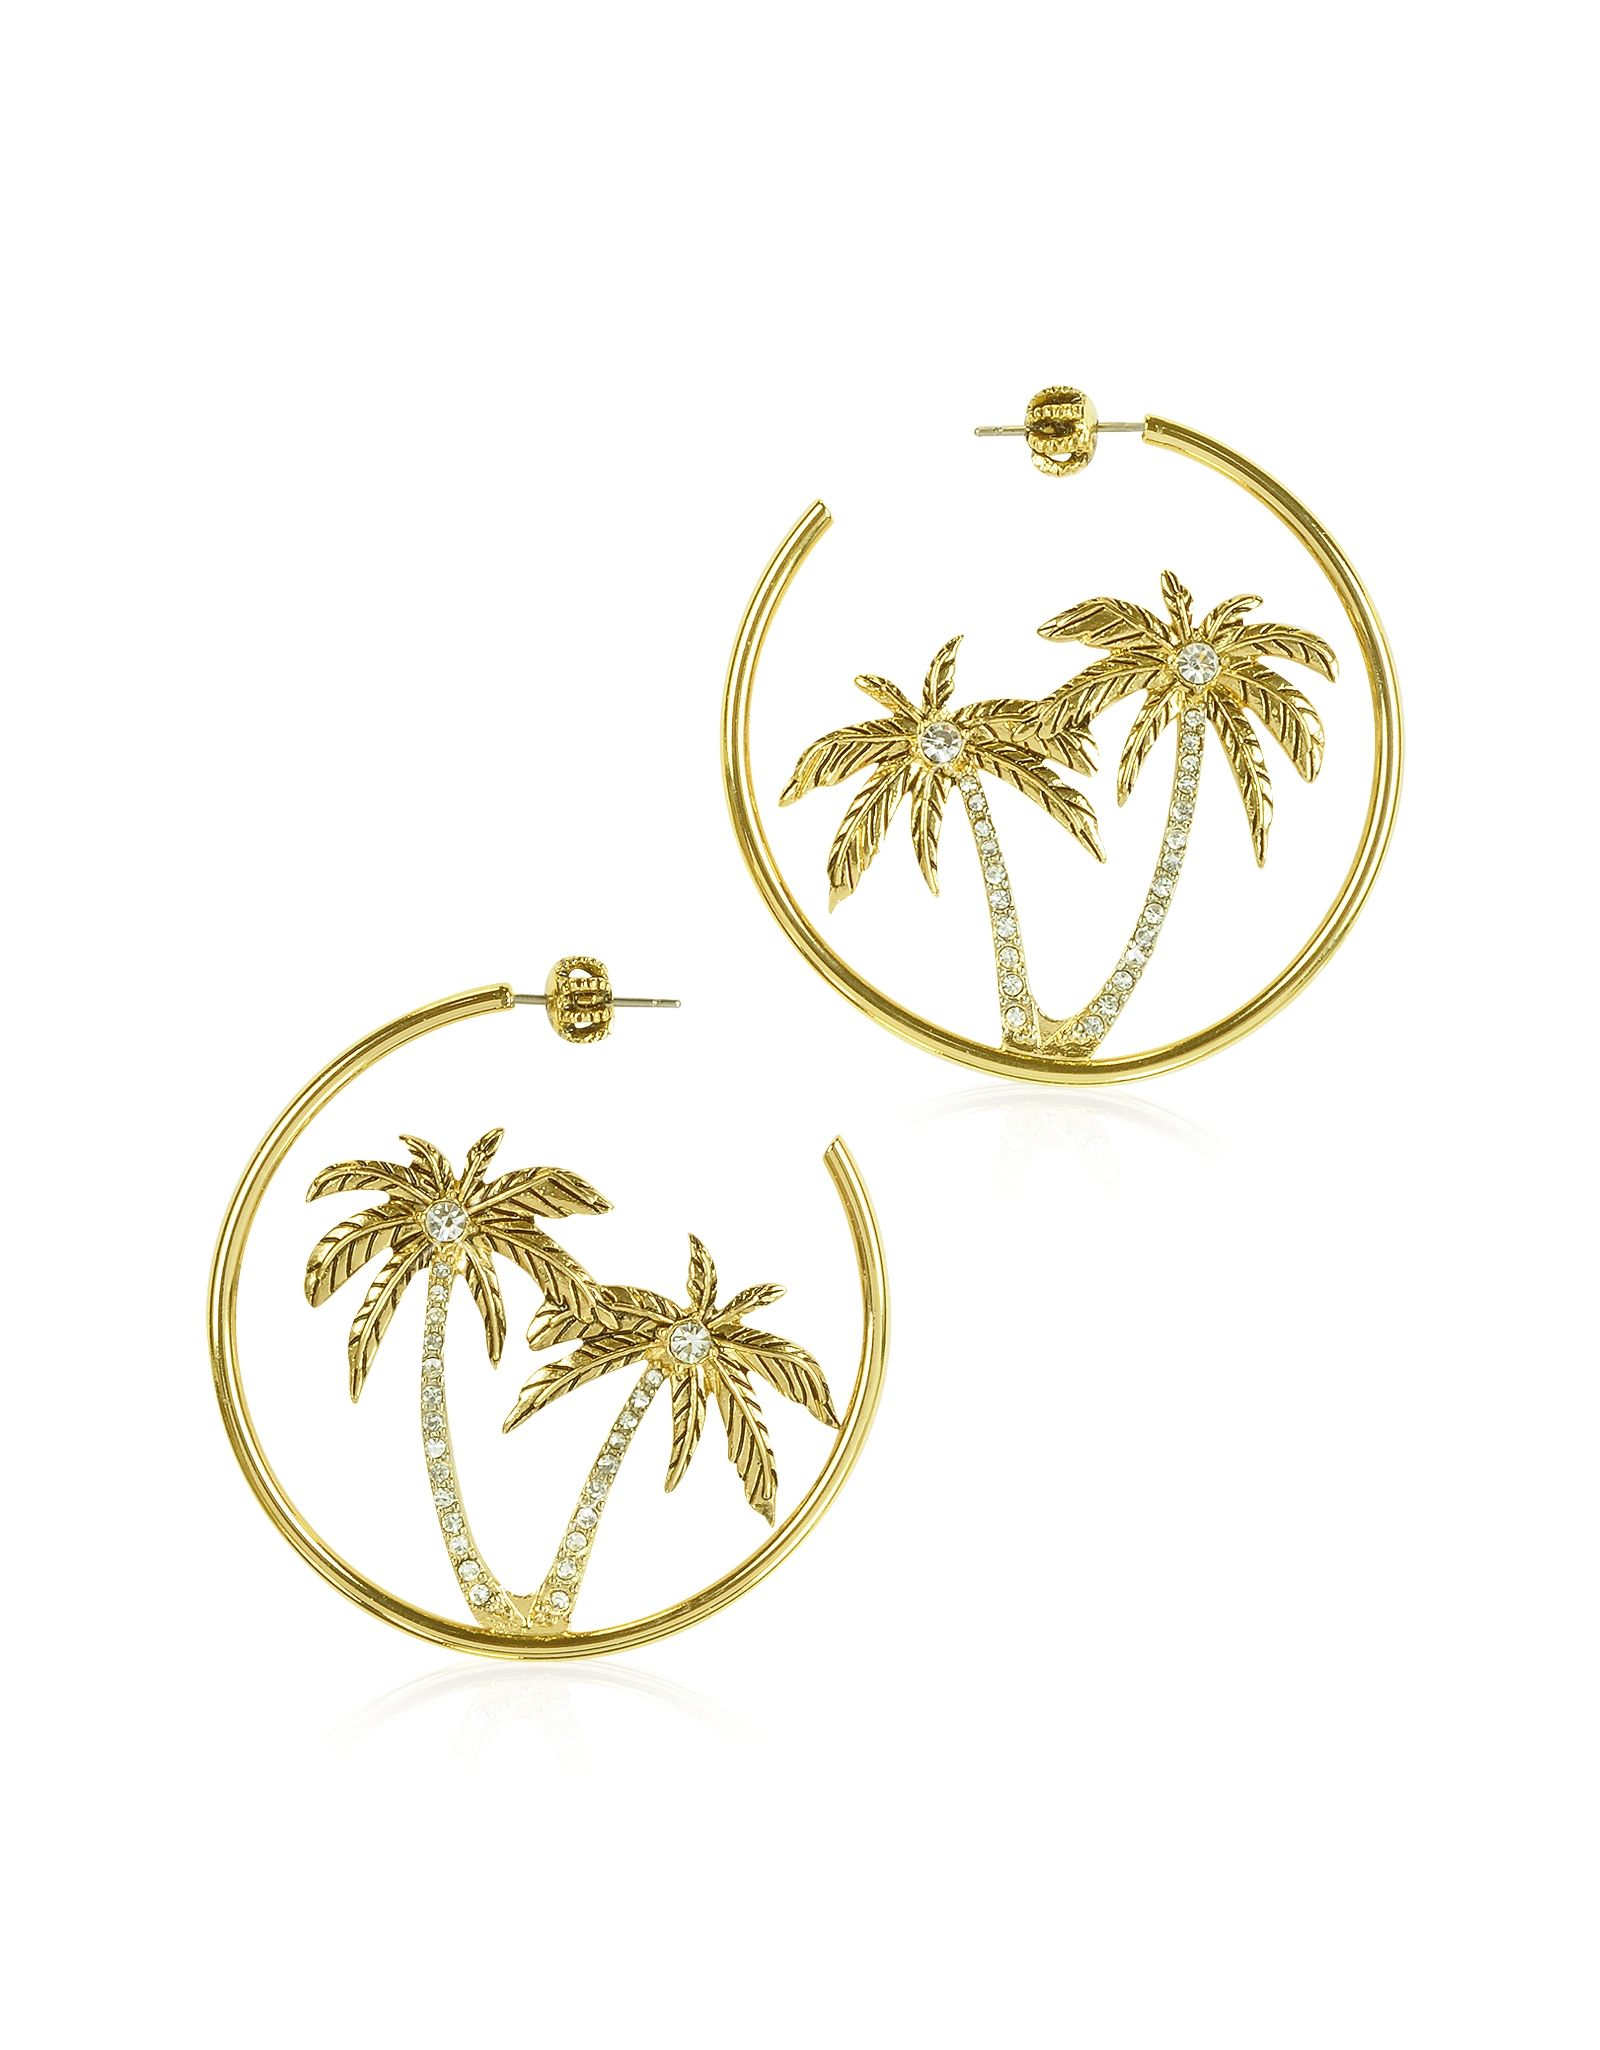 77825f412c5cf Juicy Couture Palm Tree Hoop Earrings - FORZIERI | Bought it, Have ...